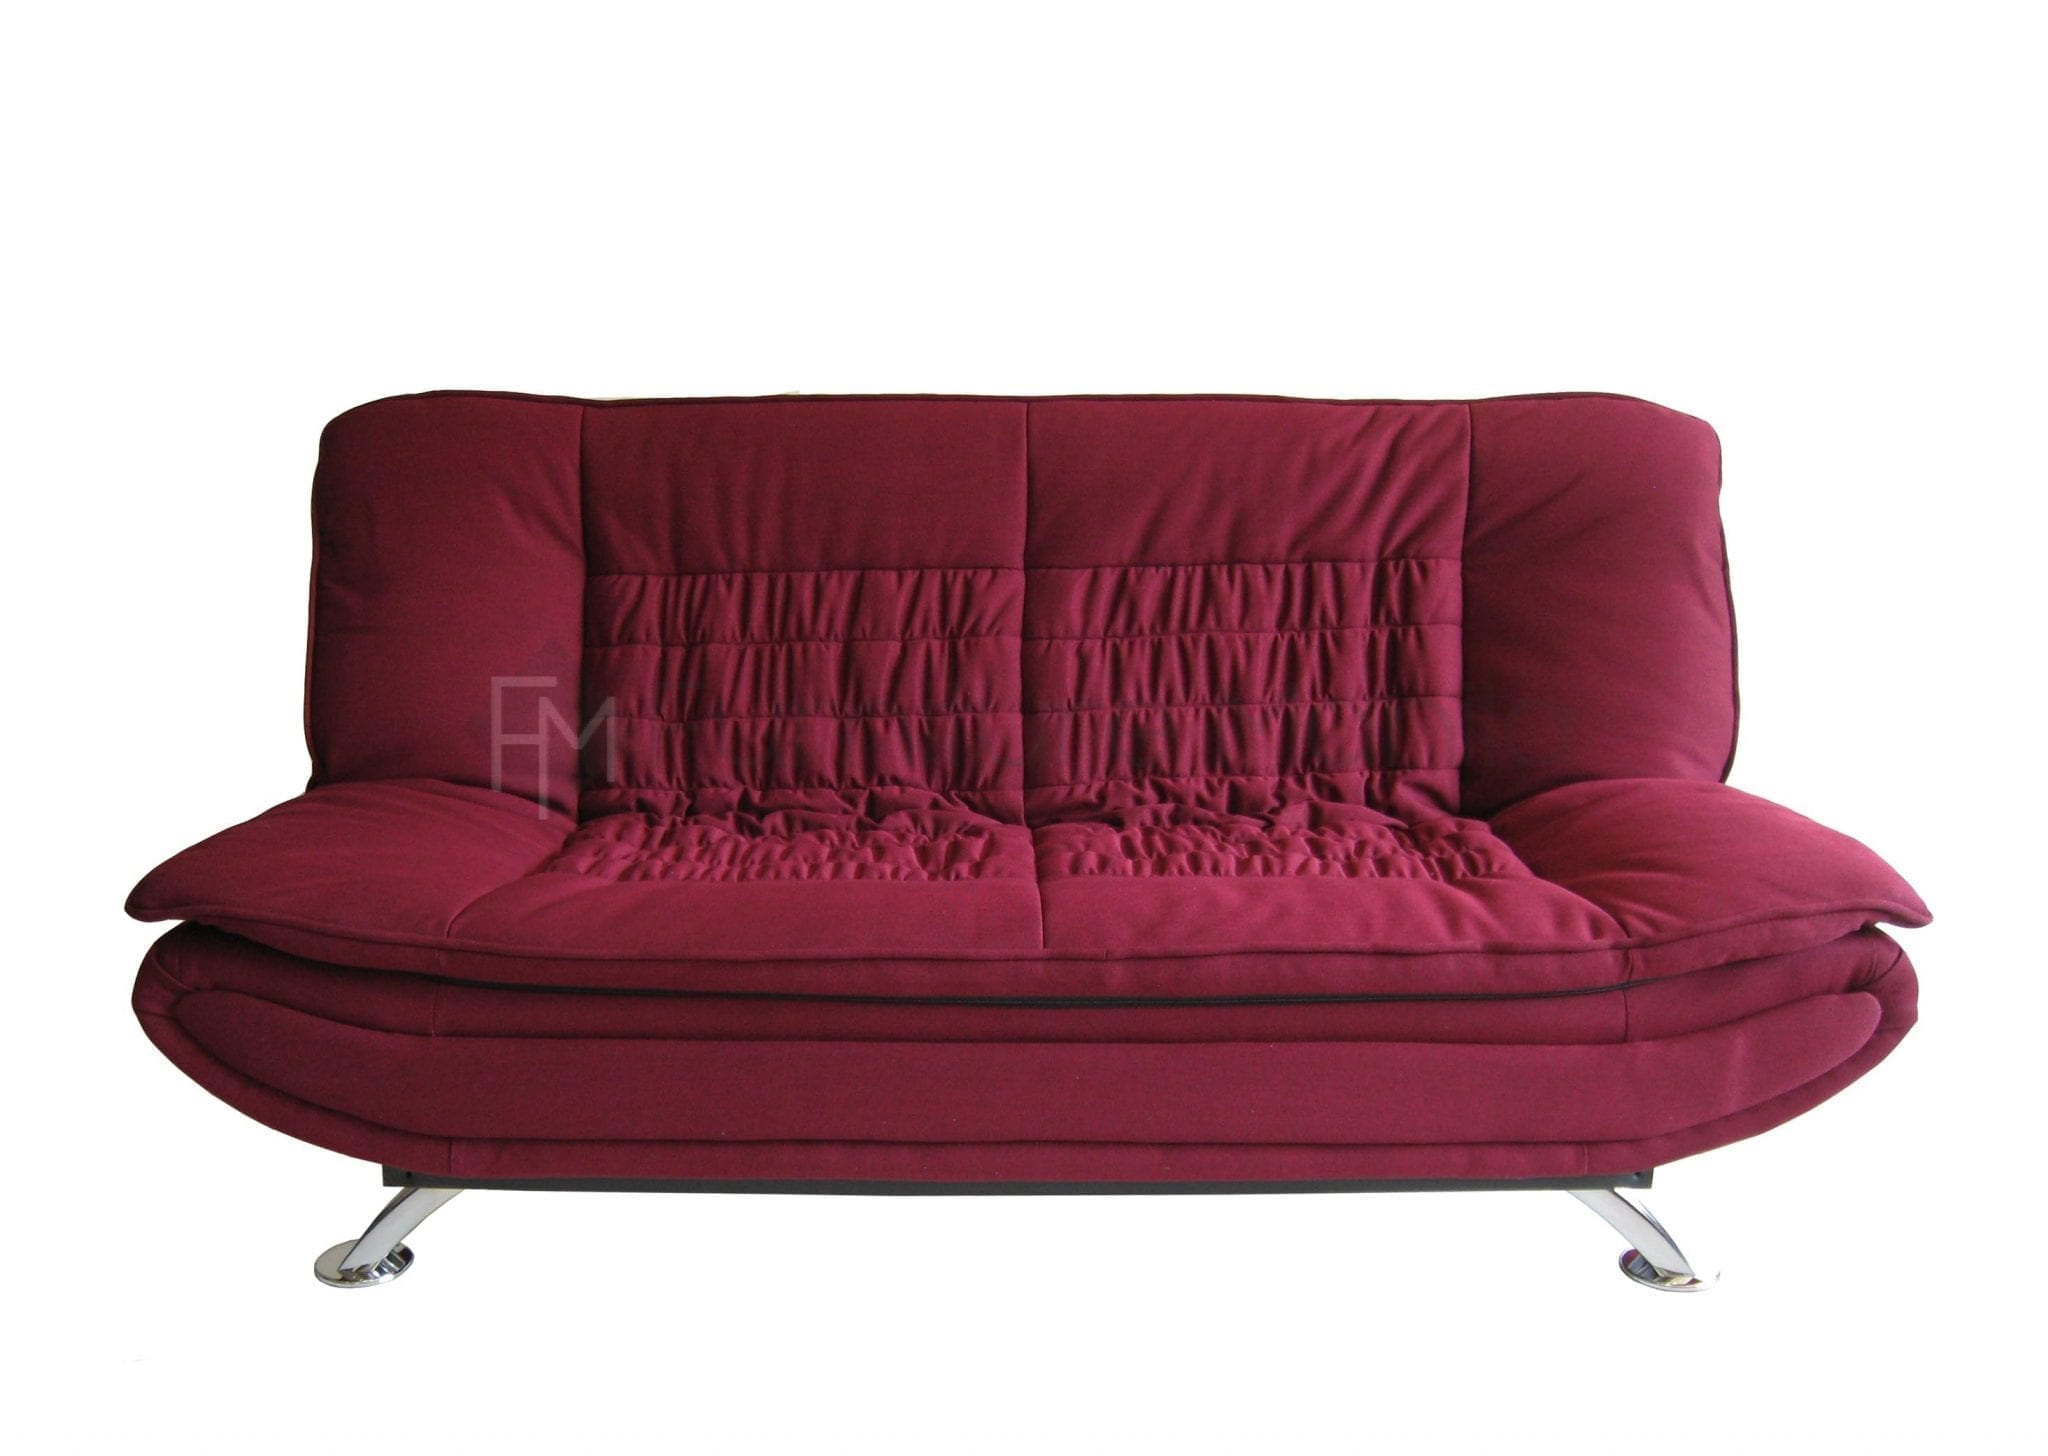 AVINO ADELAIDE SOFA BED – Furniture Manila Philippines